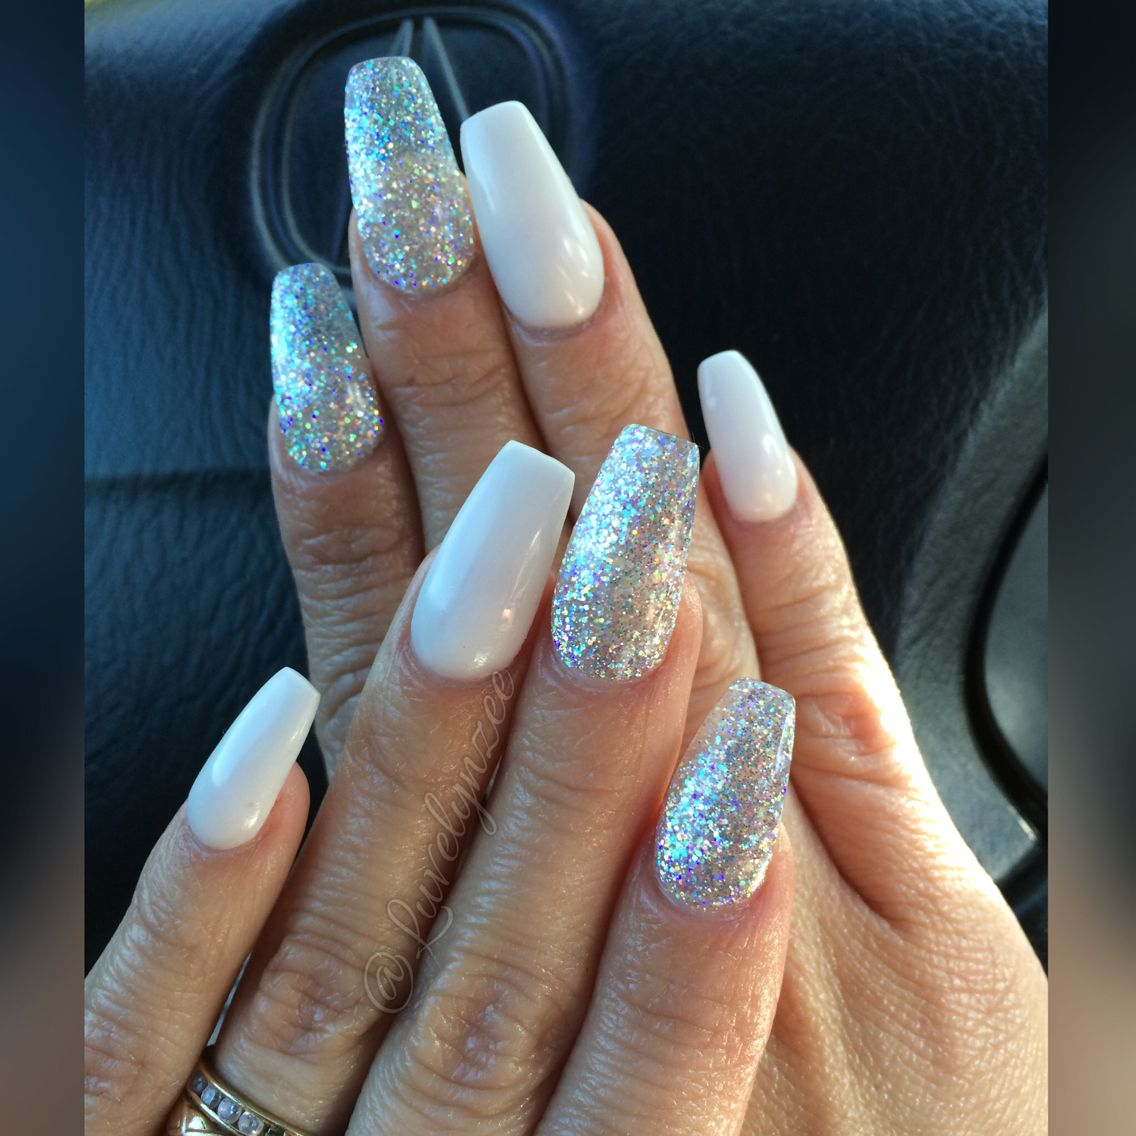 acrylic nails, white acrylic nails, silver and white nails, long